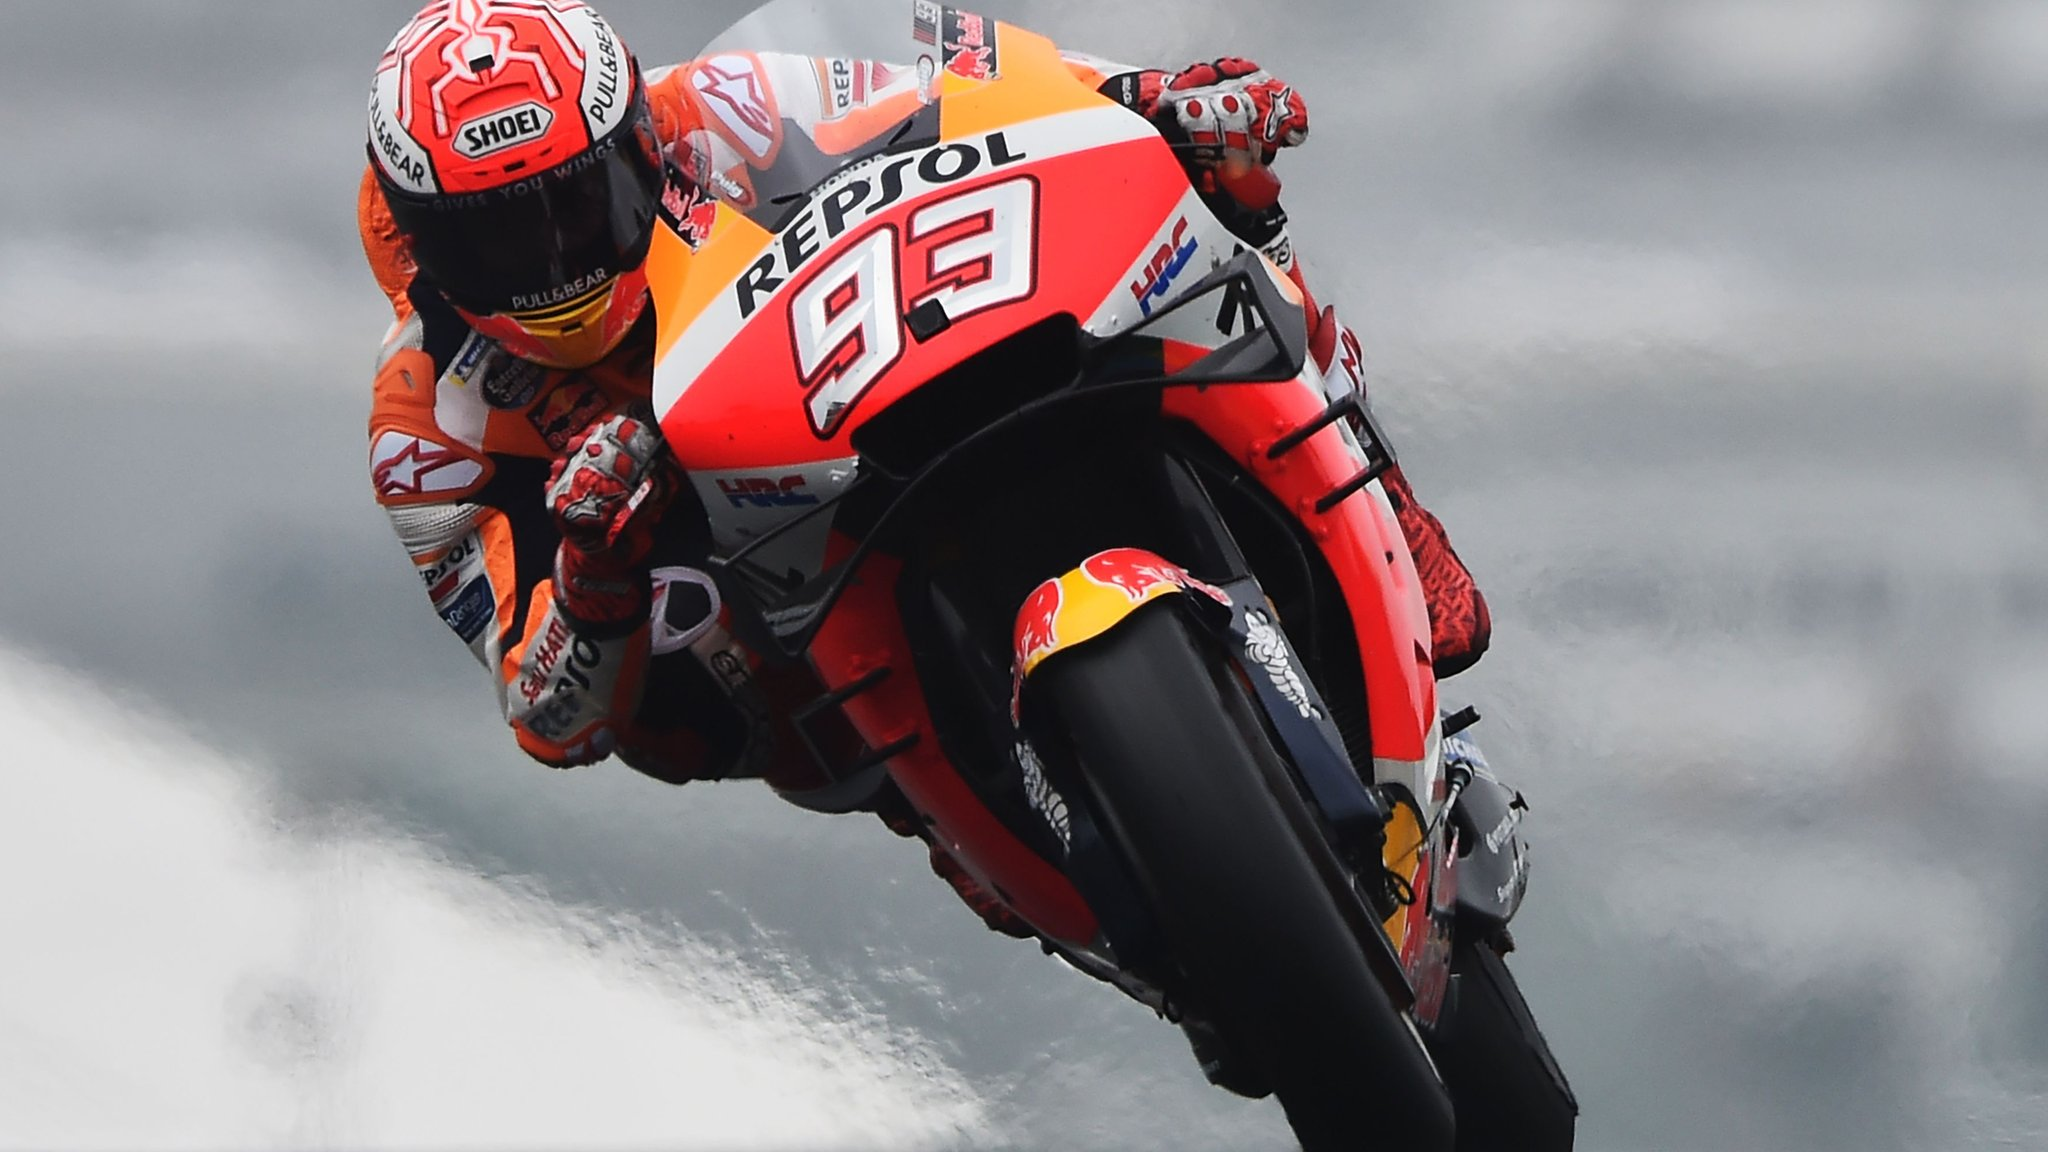 MotoGP: Marc Marquez wins in Le Mans to extend title lead